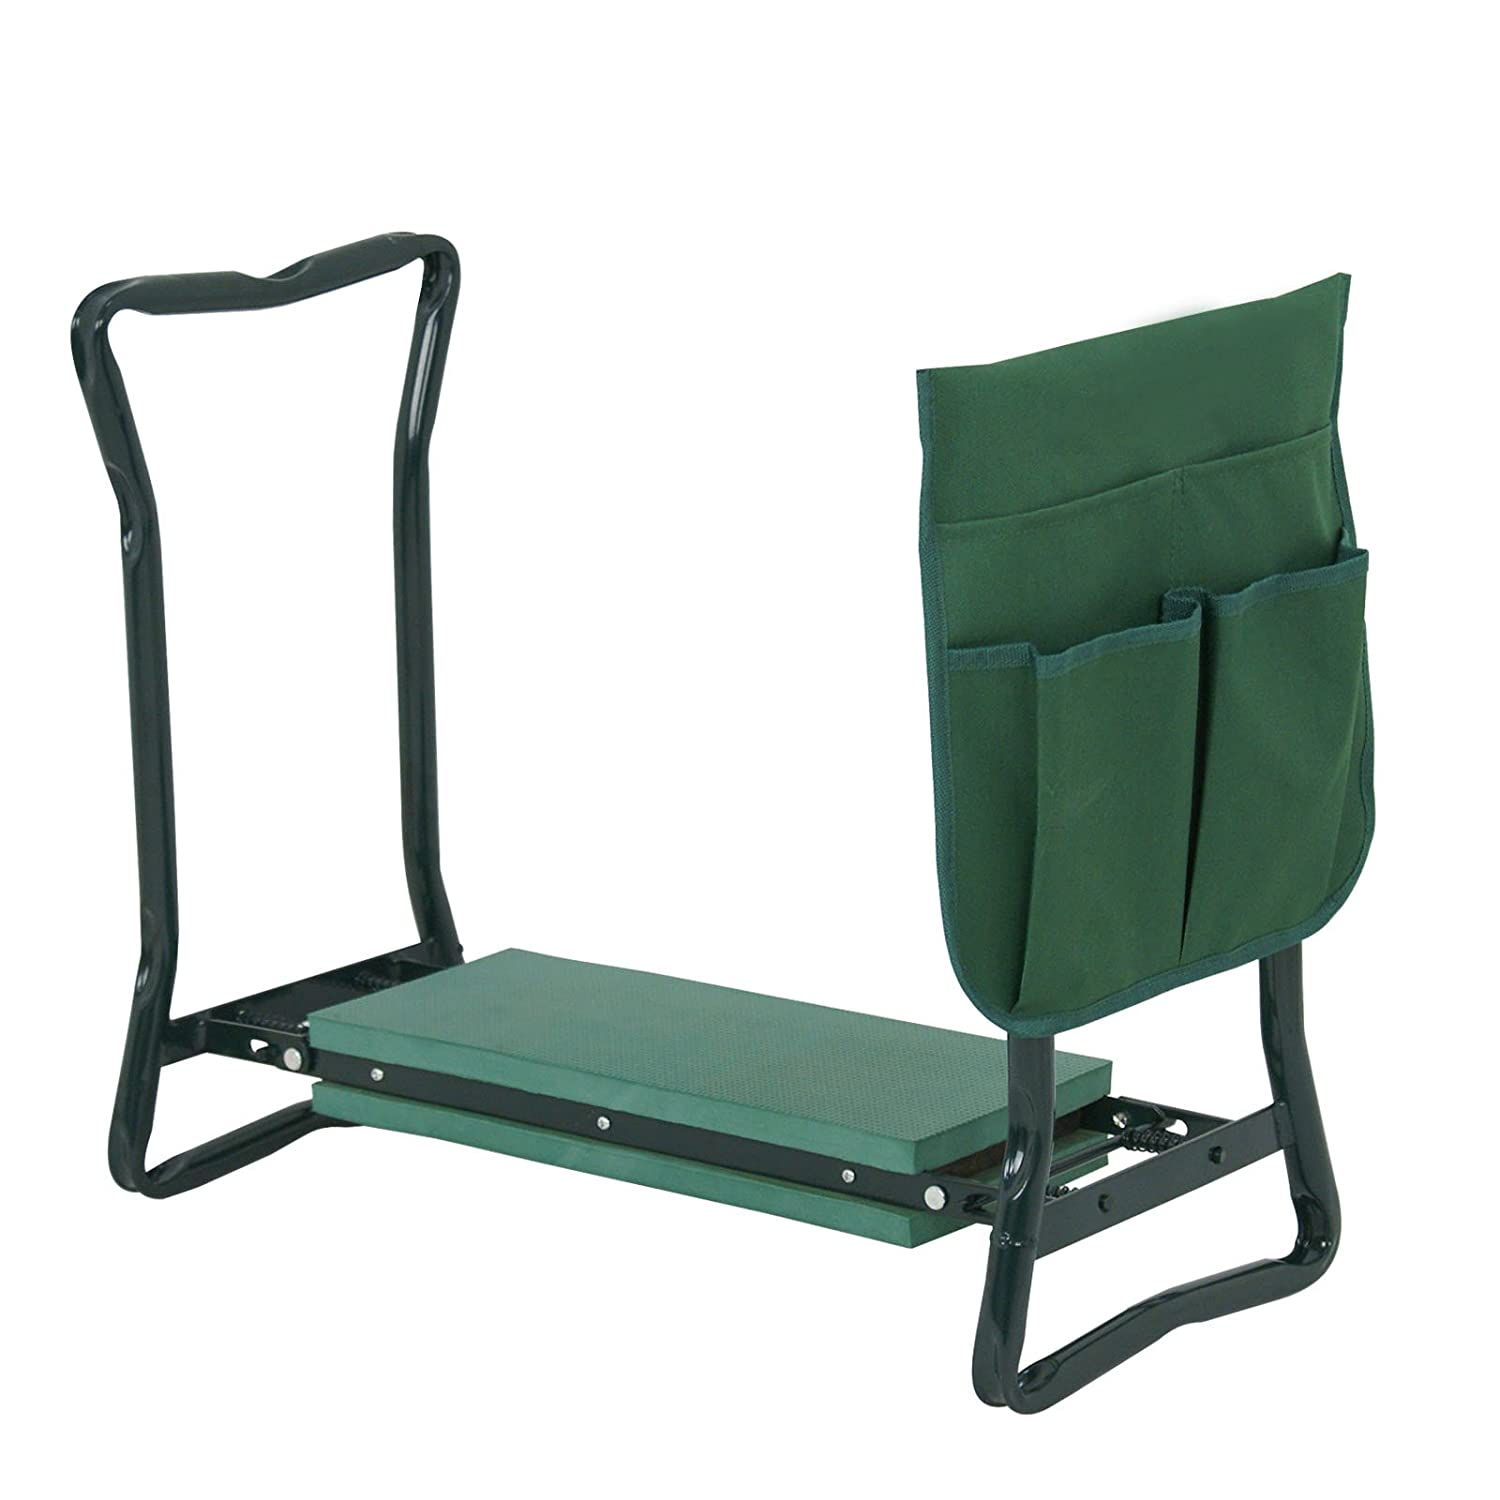 "LEMY Garden Kneeler Seat Multiuse Portable Garden Bench Garden Stools Foldable Stool with Tool Bag Pouch EVA Foam Pad (24 3/8"" x 10 7/8"" x 19 1/8"")"